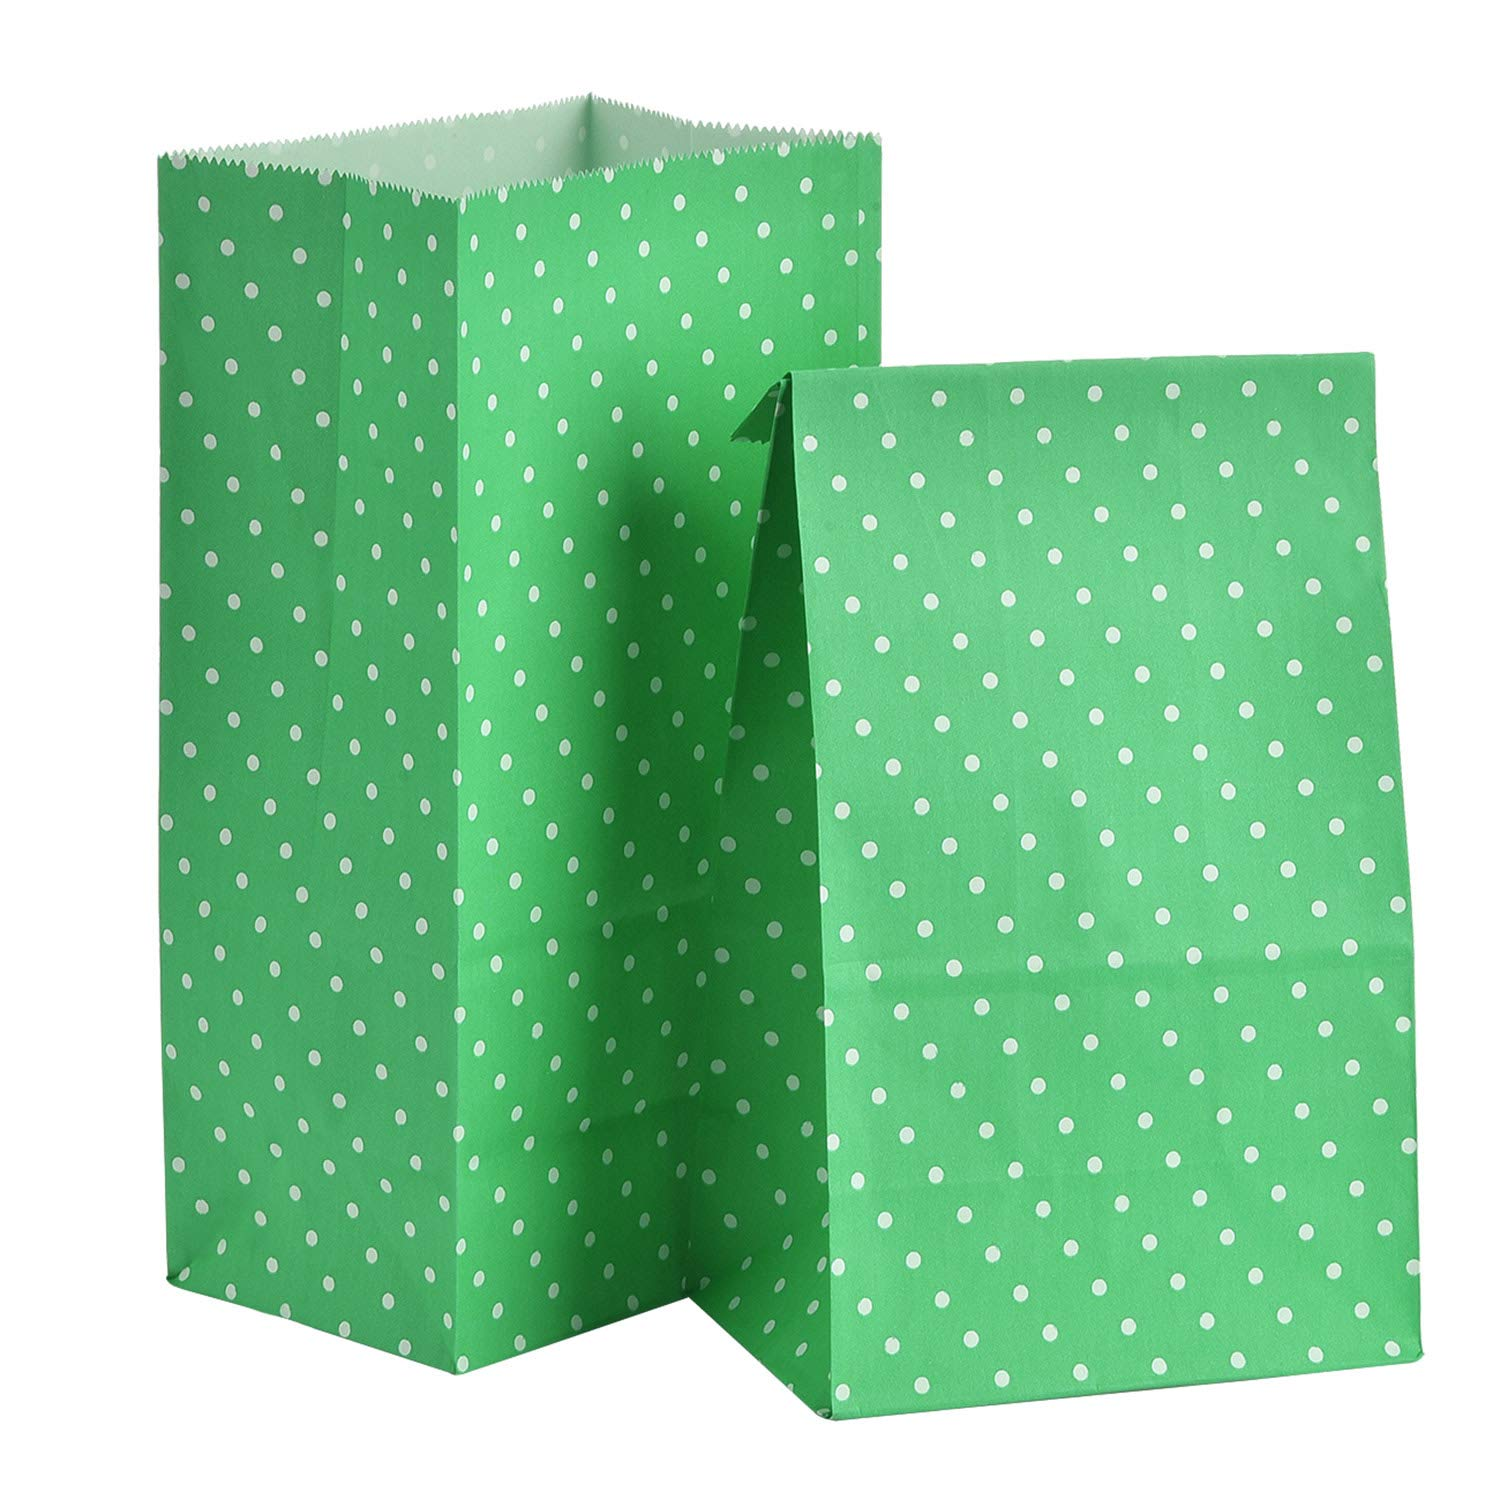 Tatuo 24 Pieces Party Bags Gift Dot Paper Bags Grocery Bags Craft Paper Bags Lunch Flat Bottom Paper Bags 18 x 9 x 6 cm, 6 Colors